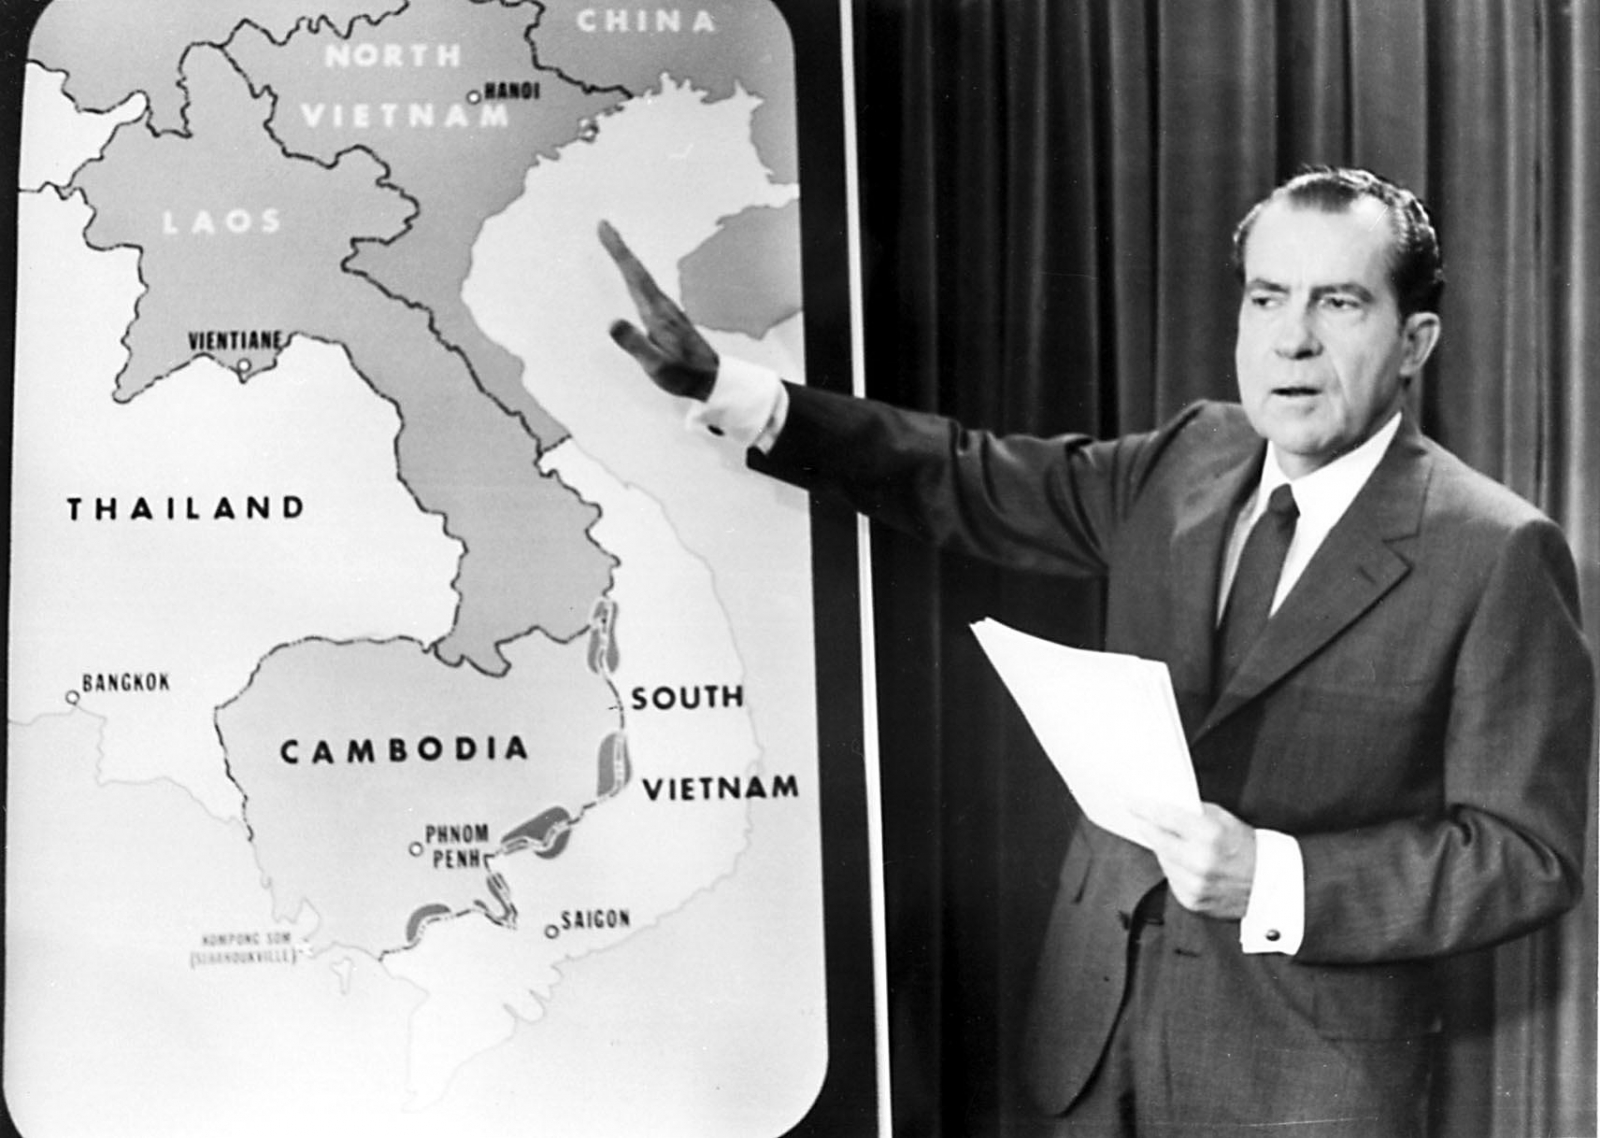 An analysis of richard nixon and the vietnam war